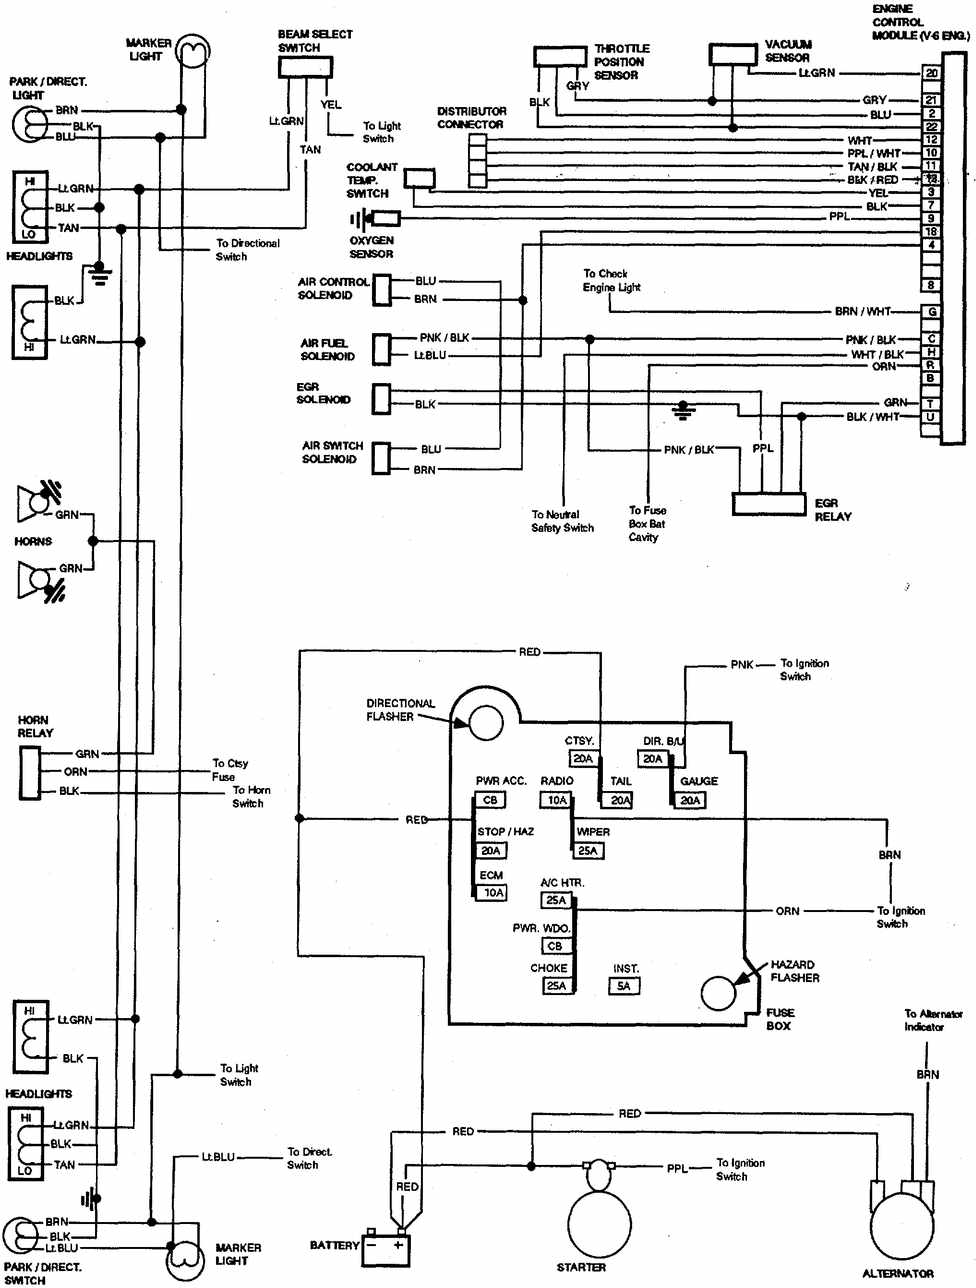 2002 gmc led tail light wiring diagram